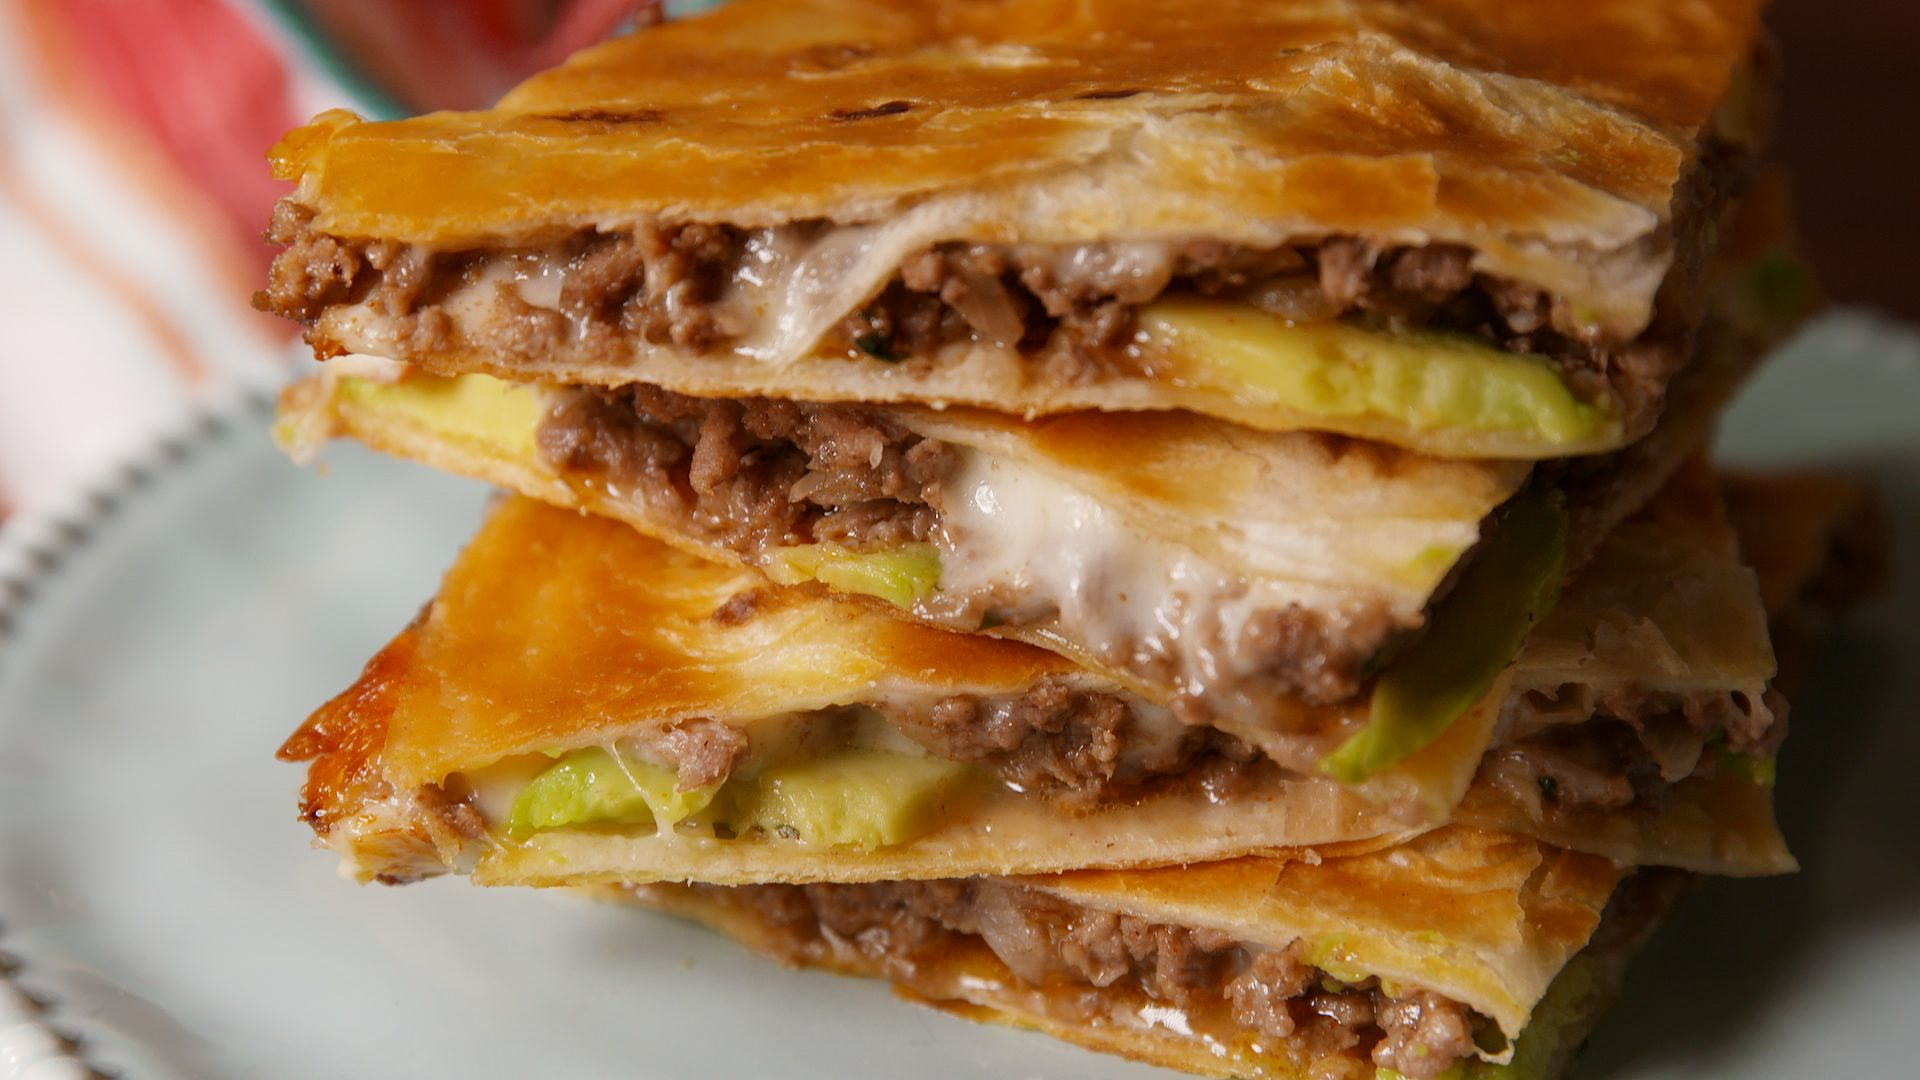 Easy Quesadilla Recipe How To Make Beef Quesadillas Delish Com